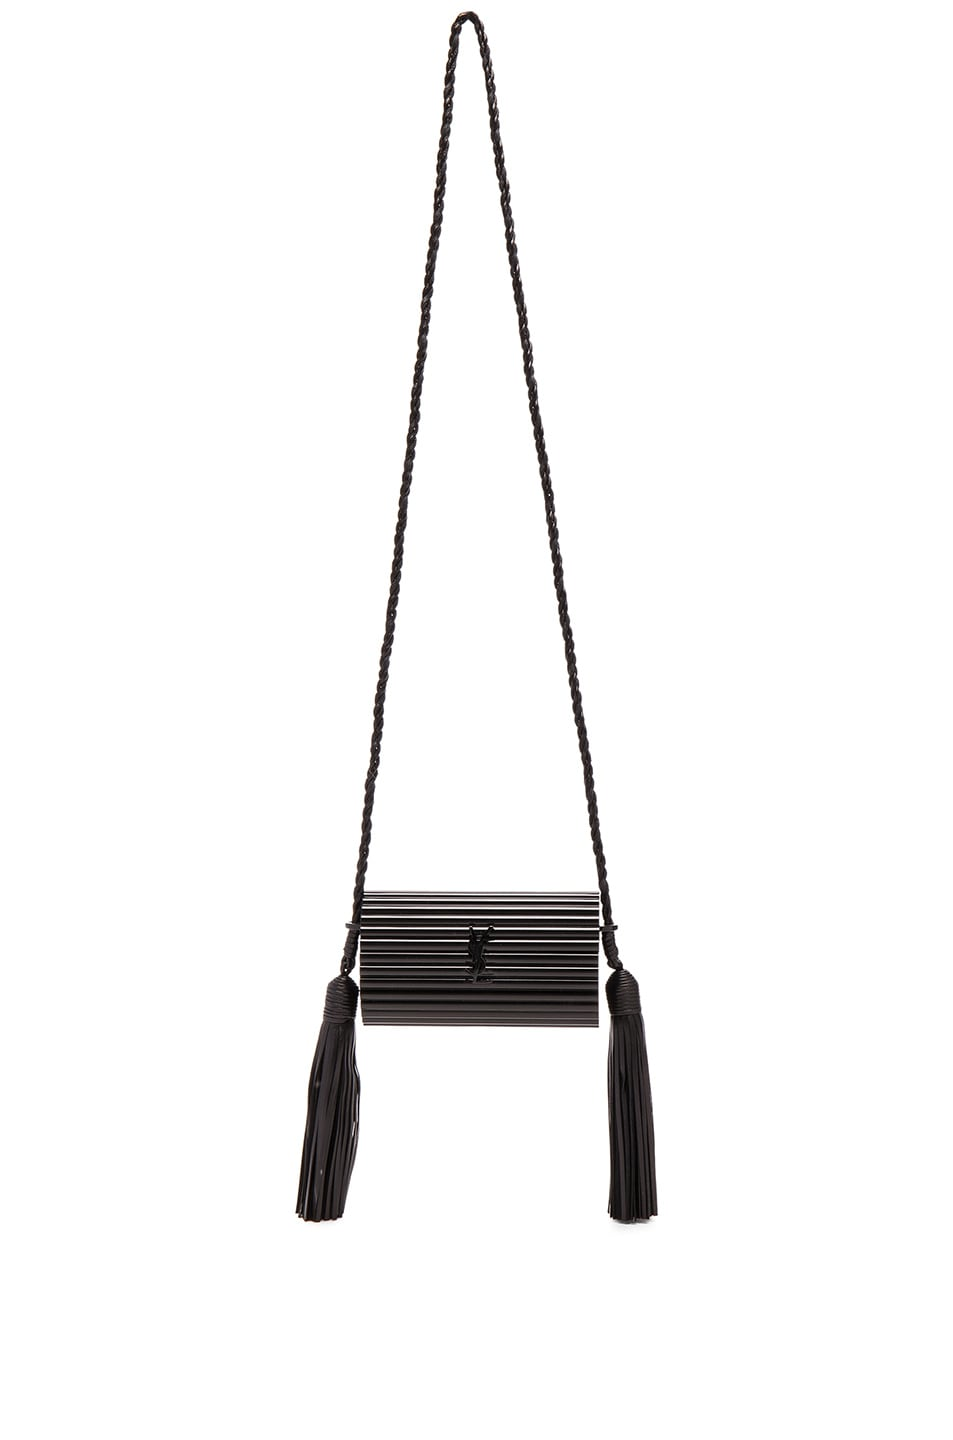 yves saint laurent opium miniaudiere shoulder bag